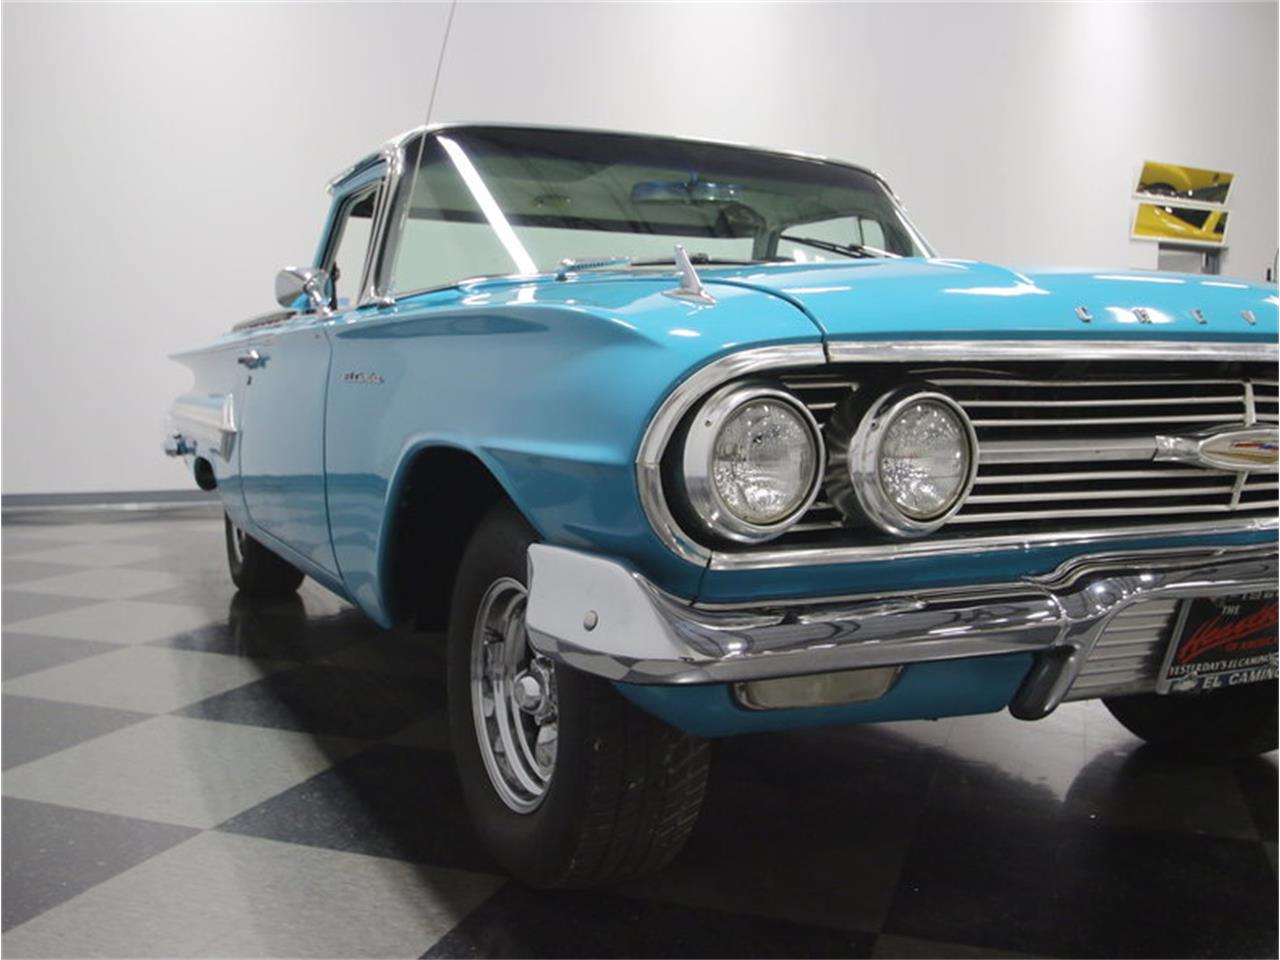 Large Picture of Classic 1960 Chevrolet El Camino located in Tennessee - $39,995.00 - L6AL